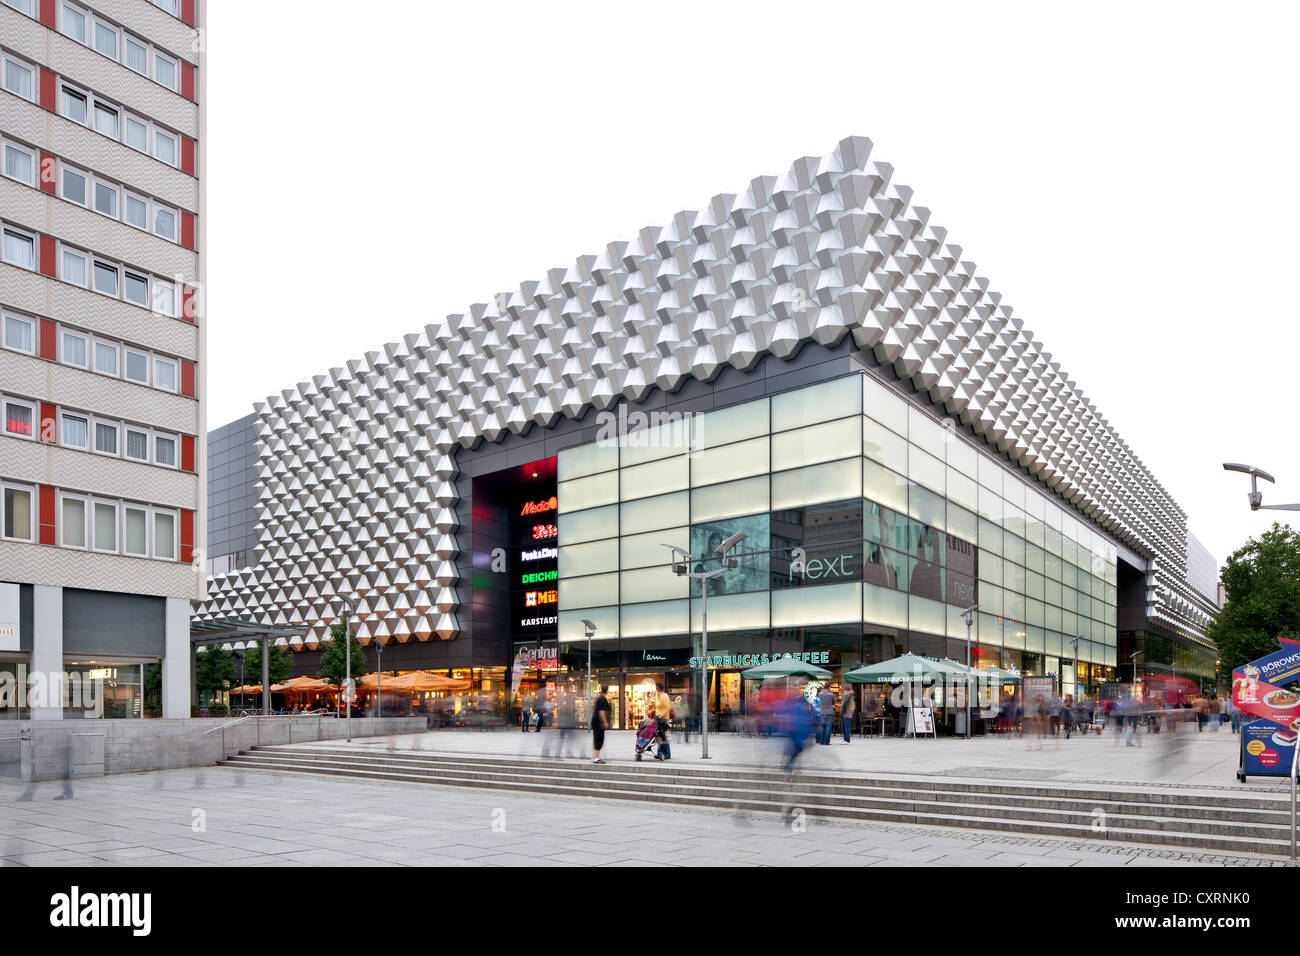 Centrum department store, Centrum Galerie shopping center, Saxony, Germany, Europe, PublicGround Stock Photo